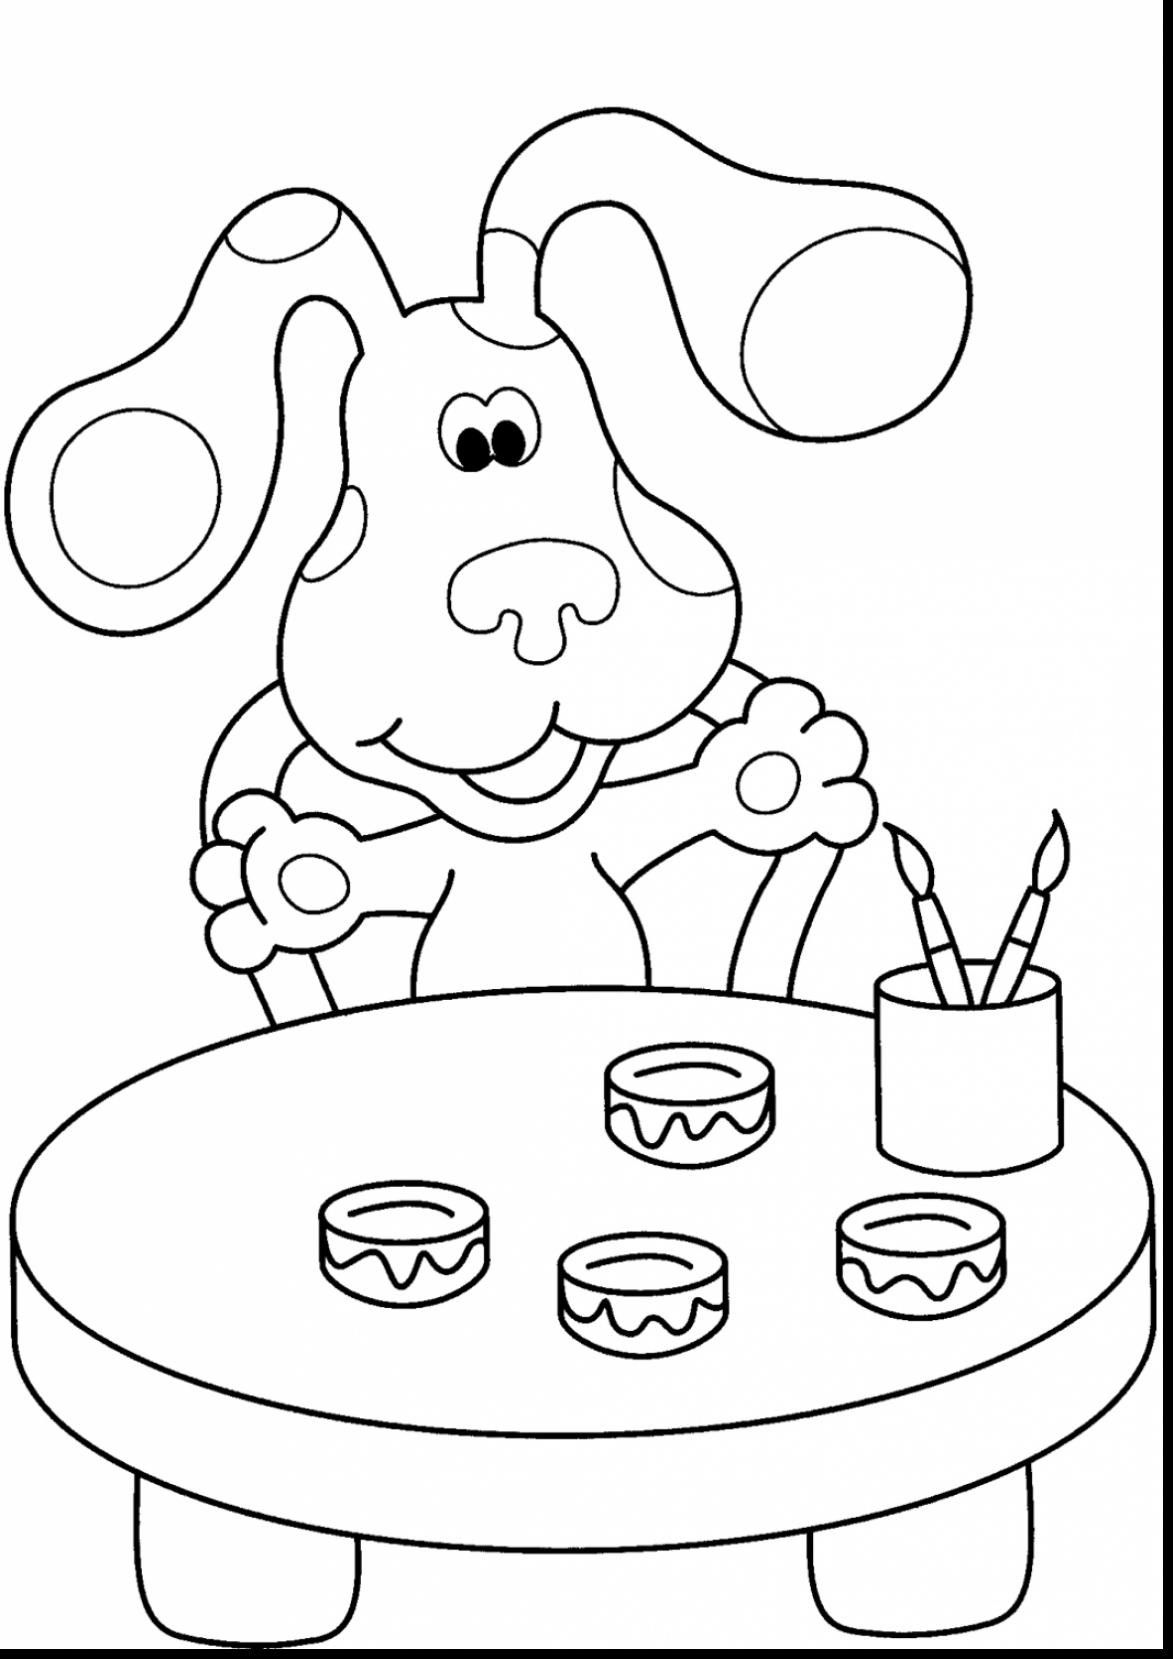 1173x1659 Blues Clues Coloring Pages Best Of Kids N Fun Free Draw To Color